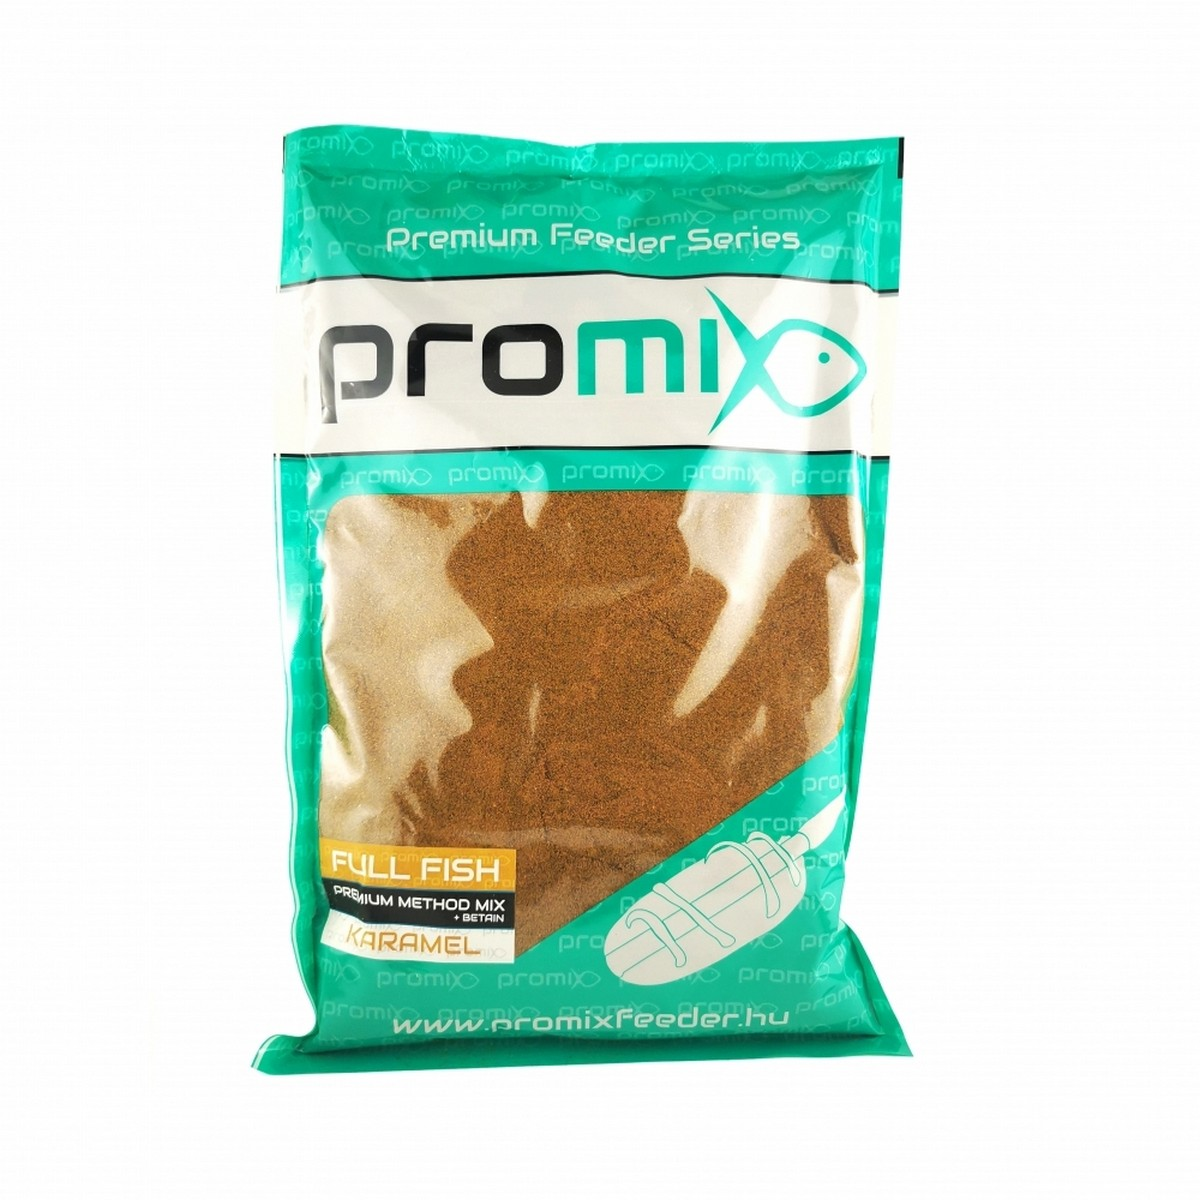 PROMIX FULL FISH KARAMEL